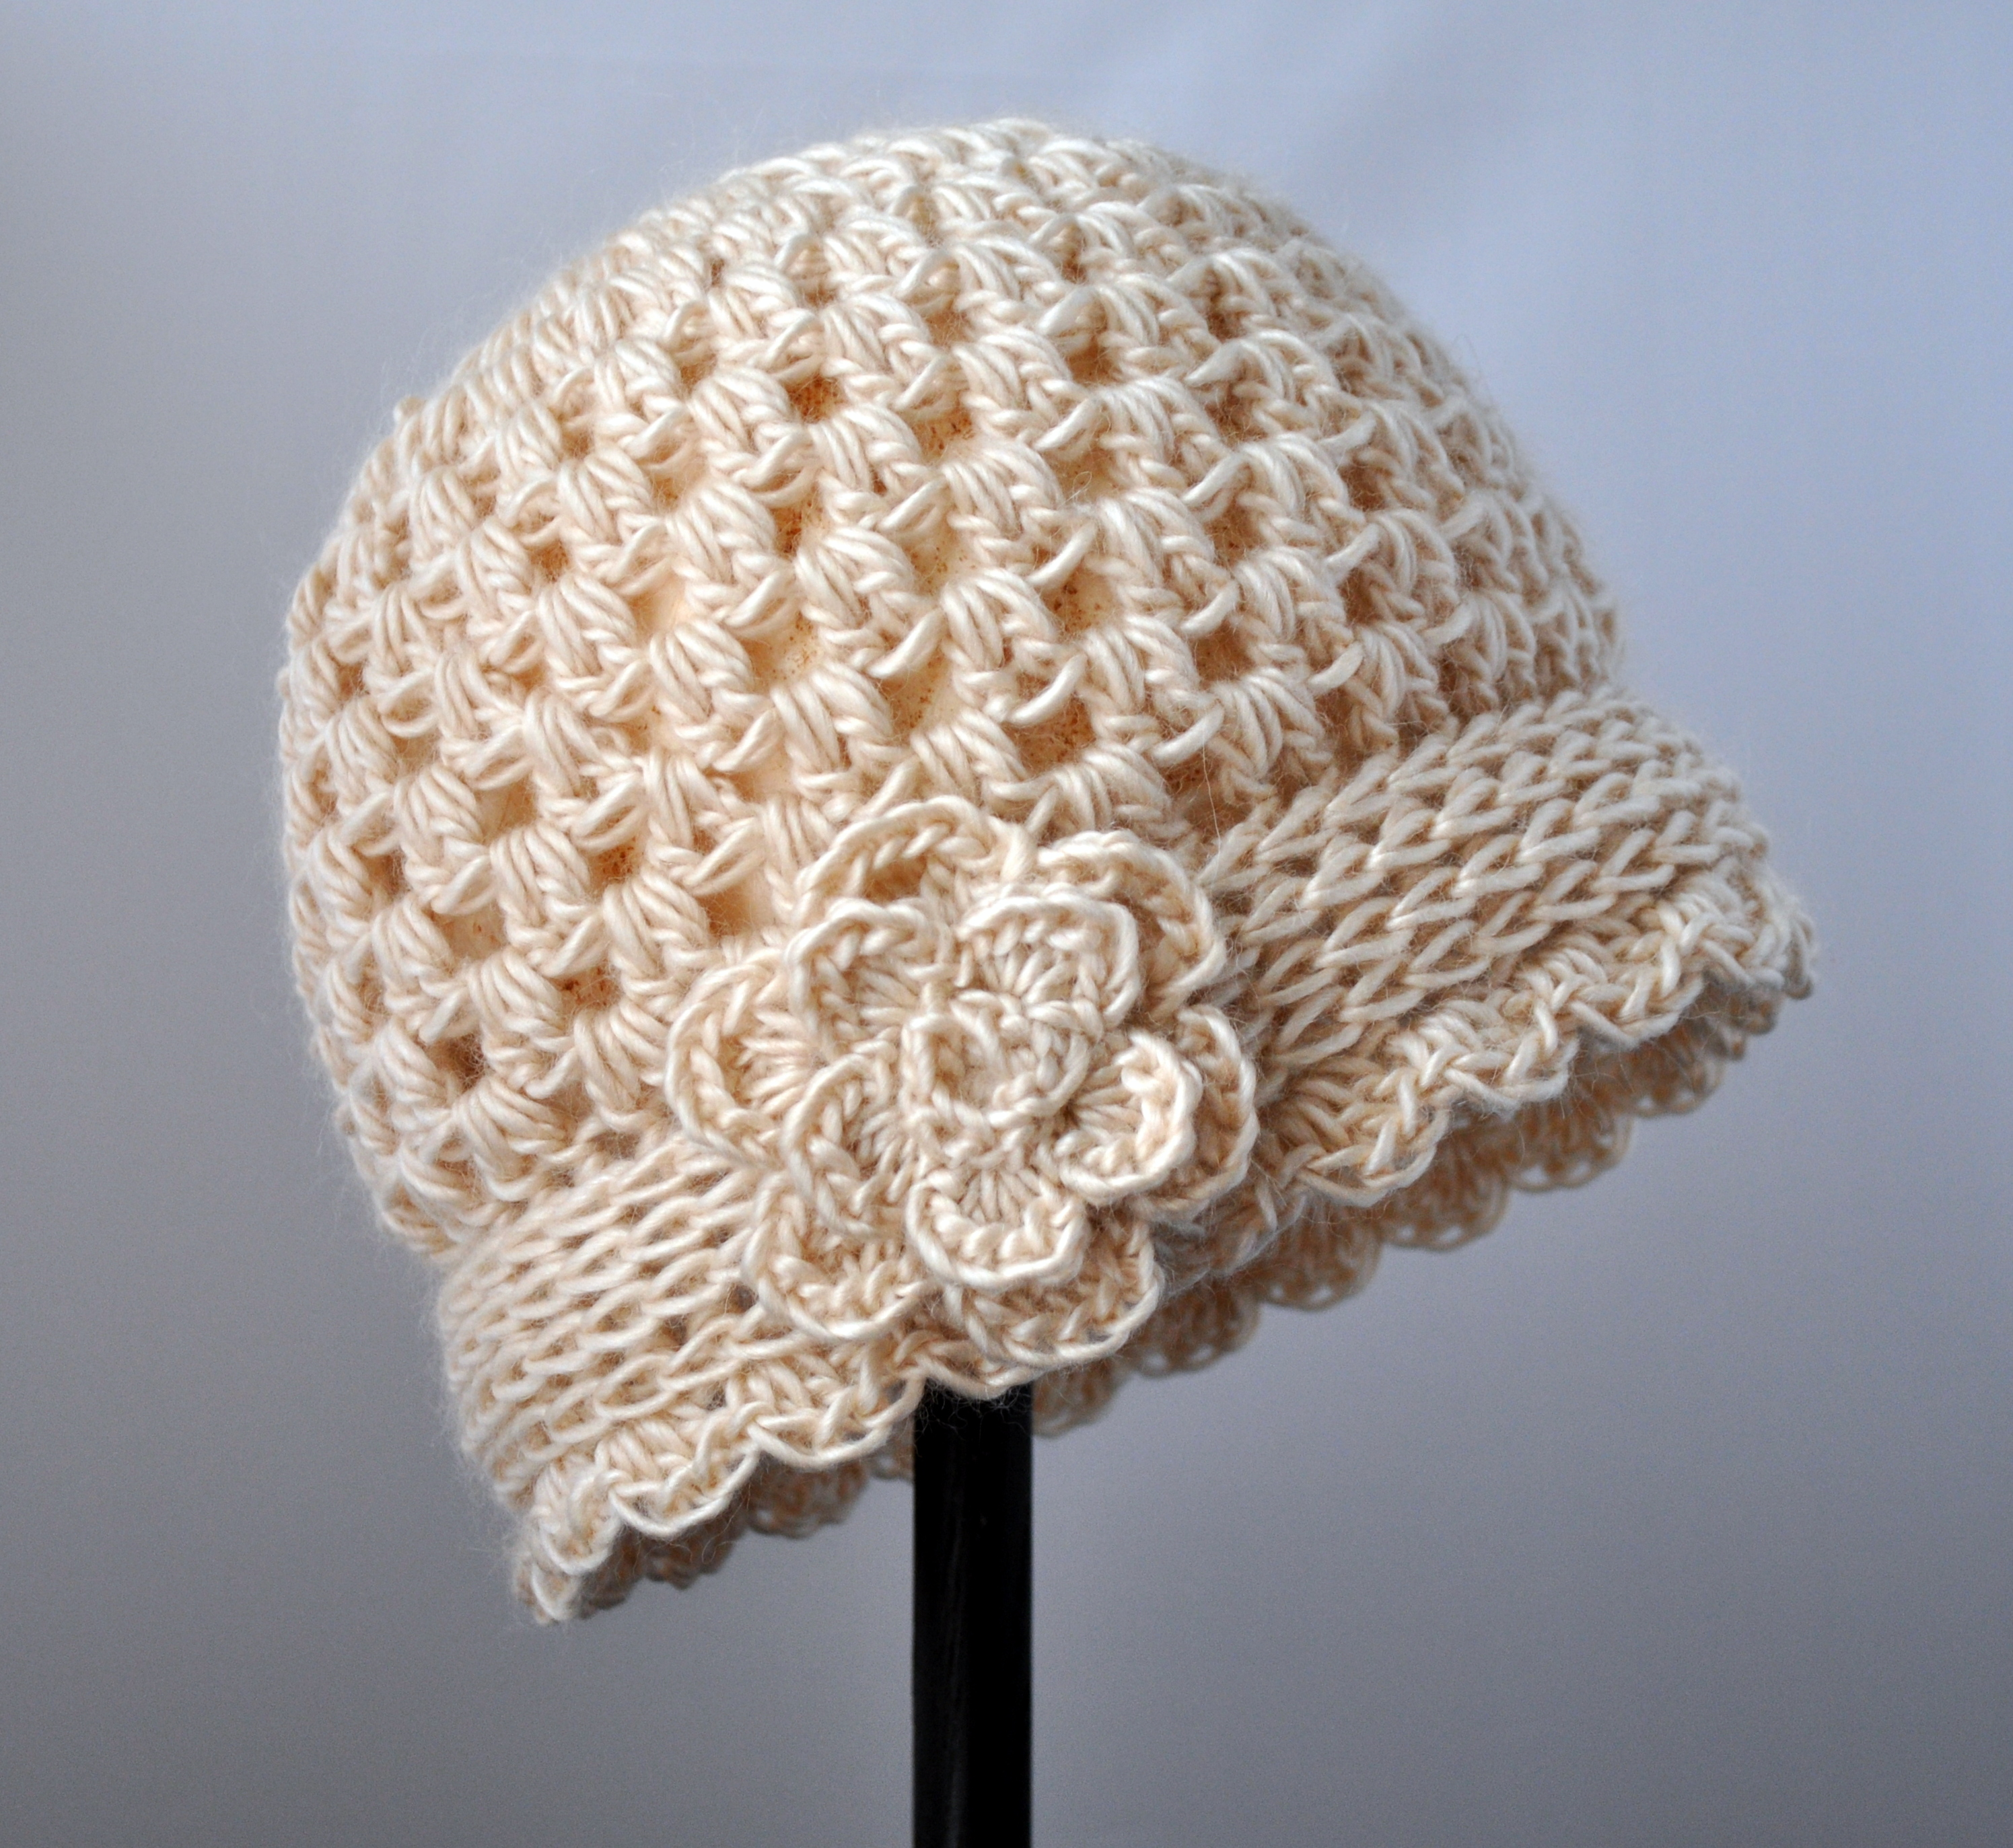 Google Crochet Patterns : Crochet Vintage Flowered Cloche Pattern Classy Crochet